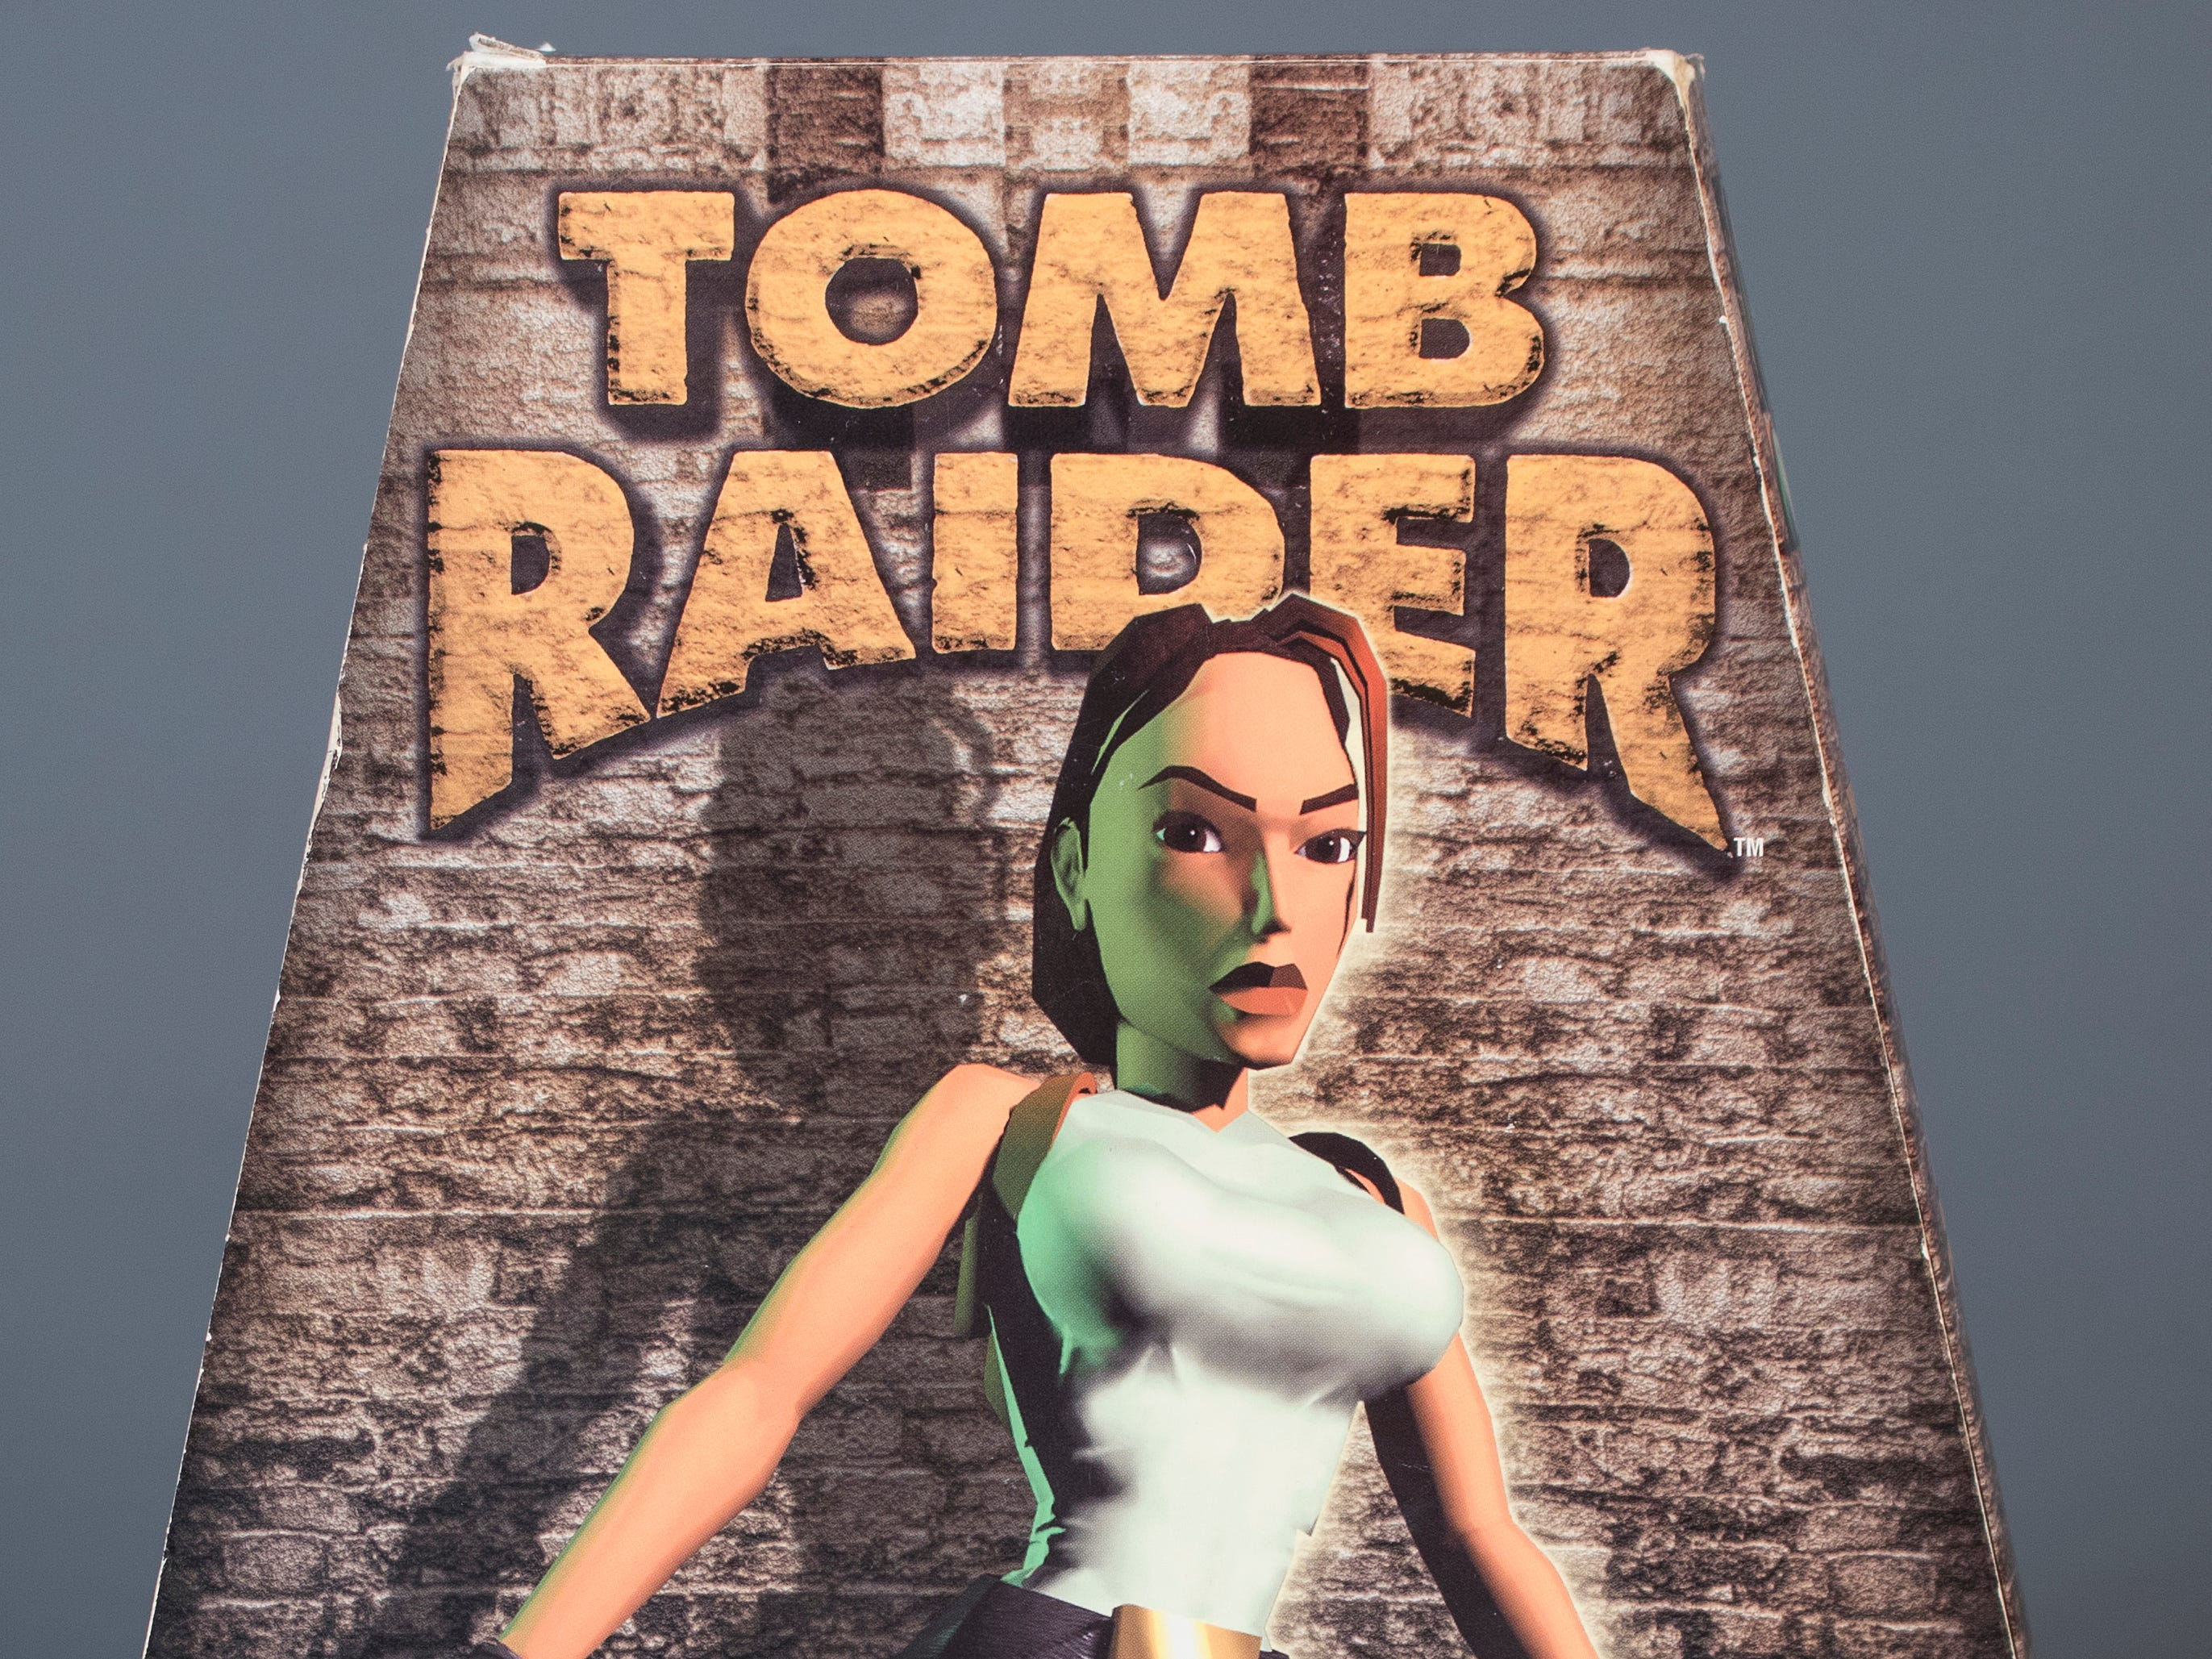 Tomb Raider was inducted into the World Video Game Hall of Fame at The Strong National Museum of Play in  Rochester, New York in 2018.